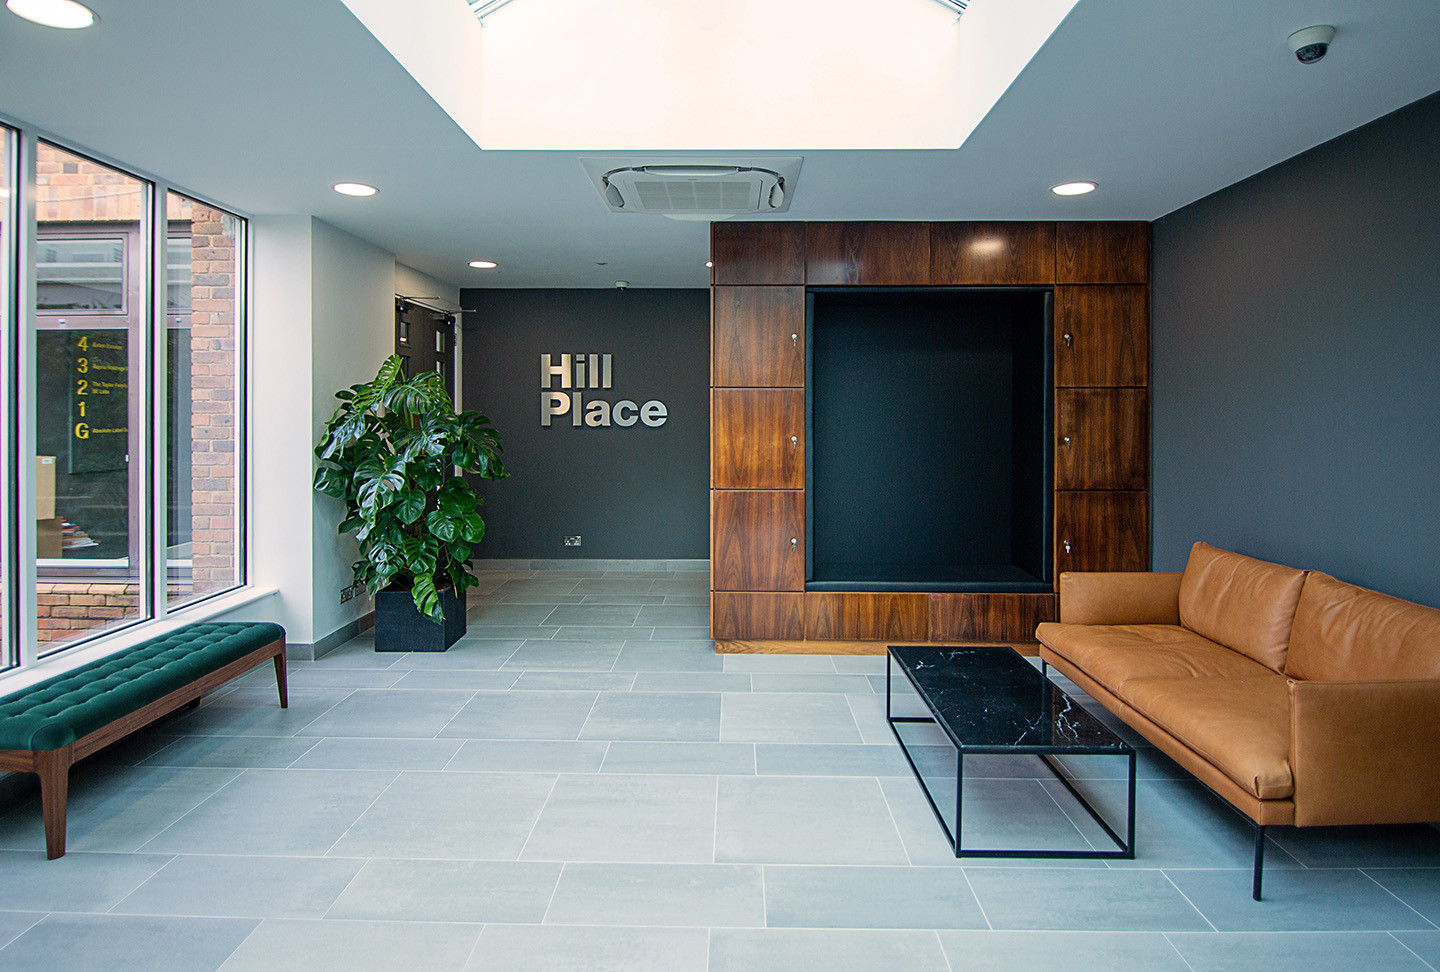 Hill Place House, London